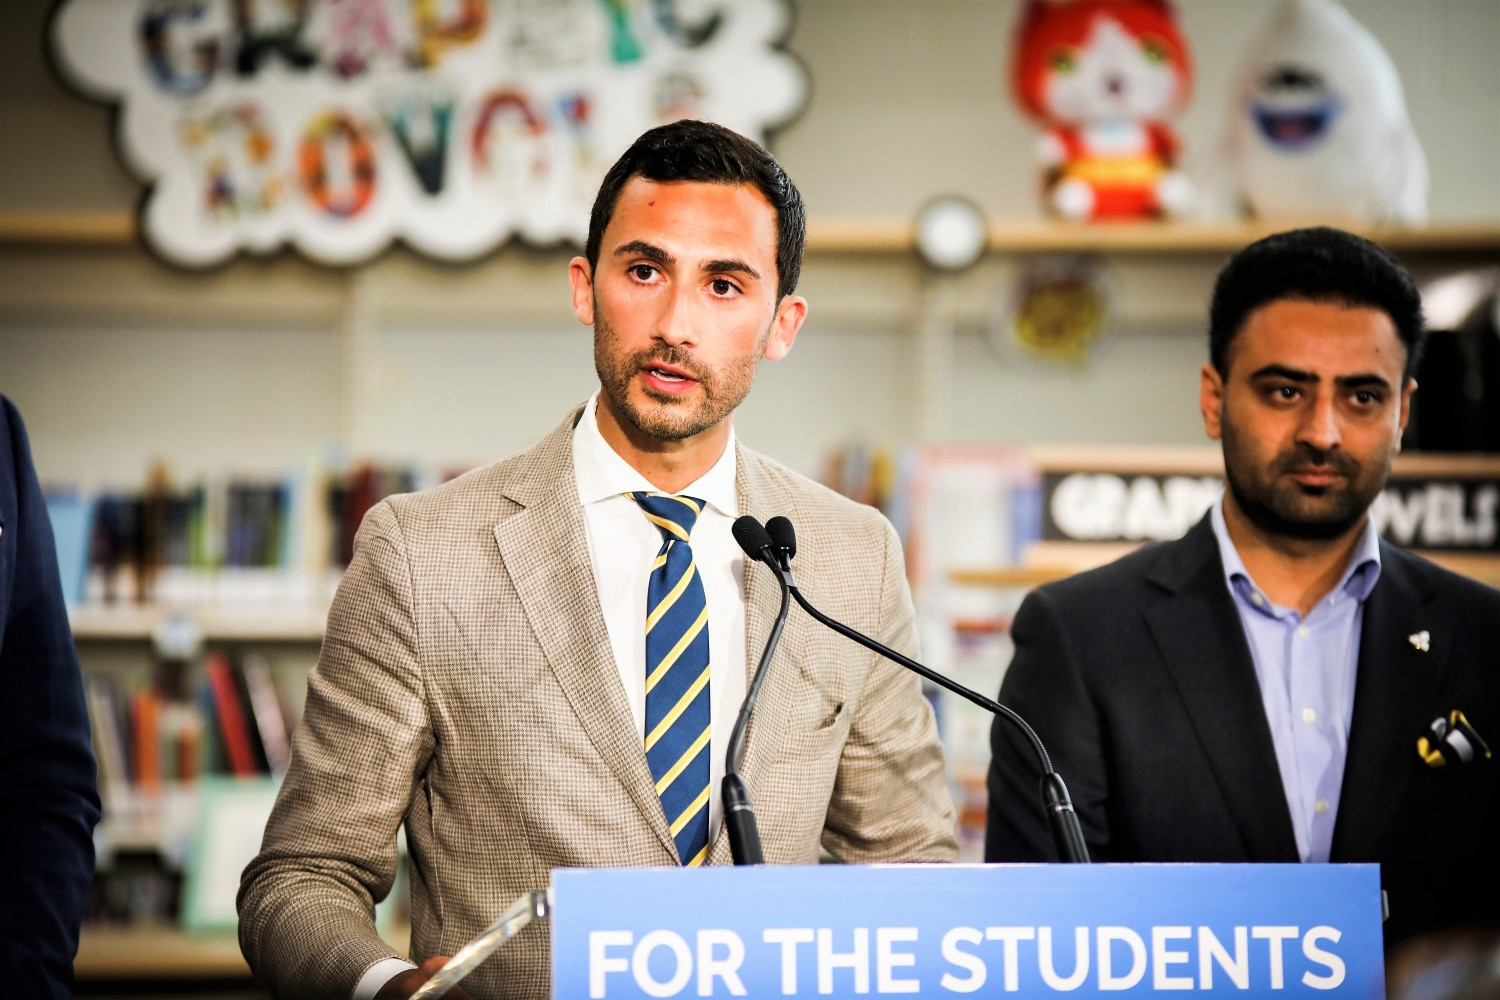 Province rejects request by PDSB trustees; supervisor will govern until anti-racism directives are implemented